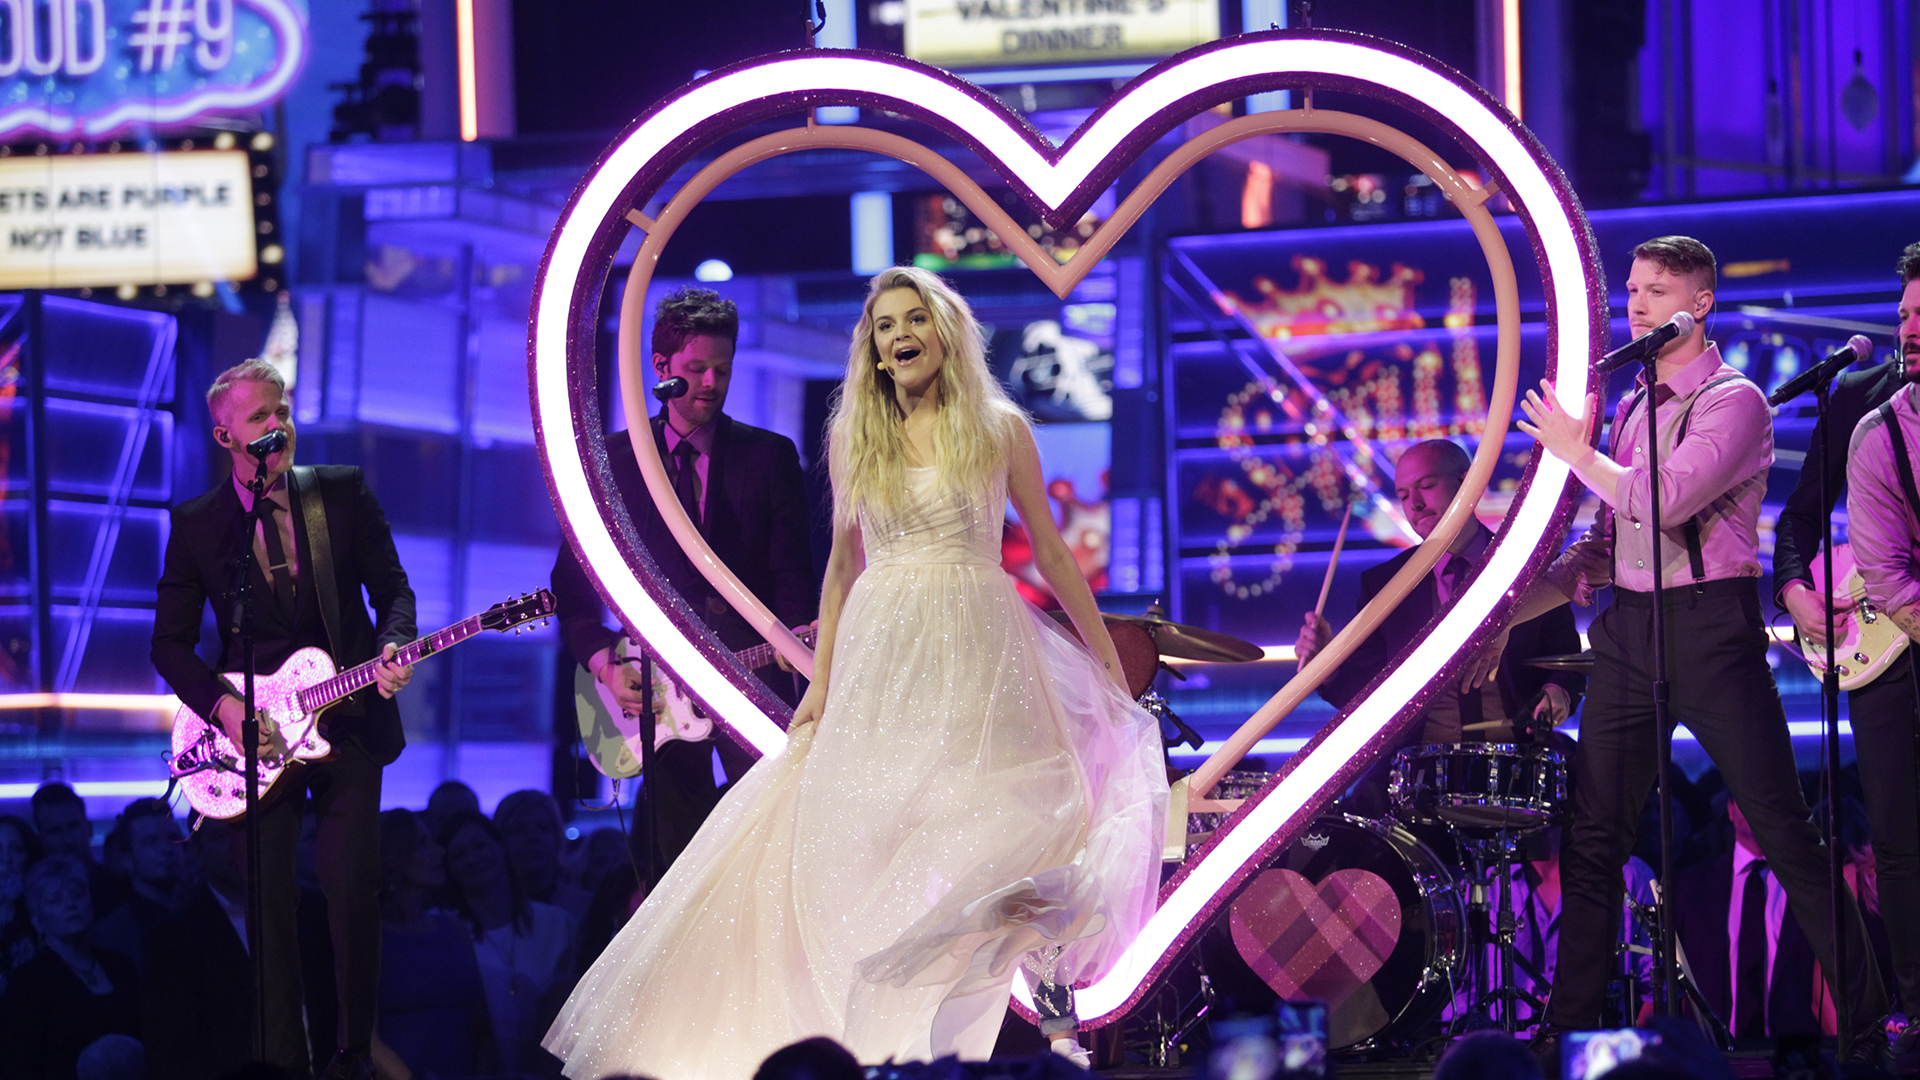 Dropping down in a neon heart, a shimmering Kelsea Ballerini performs